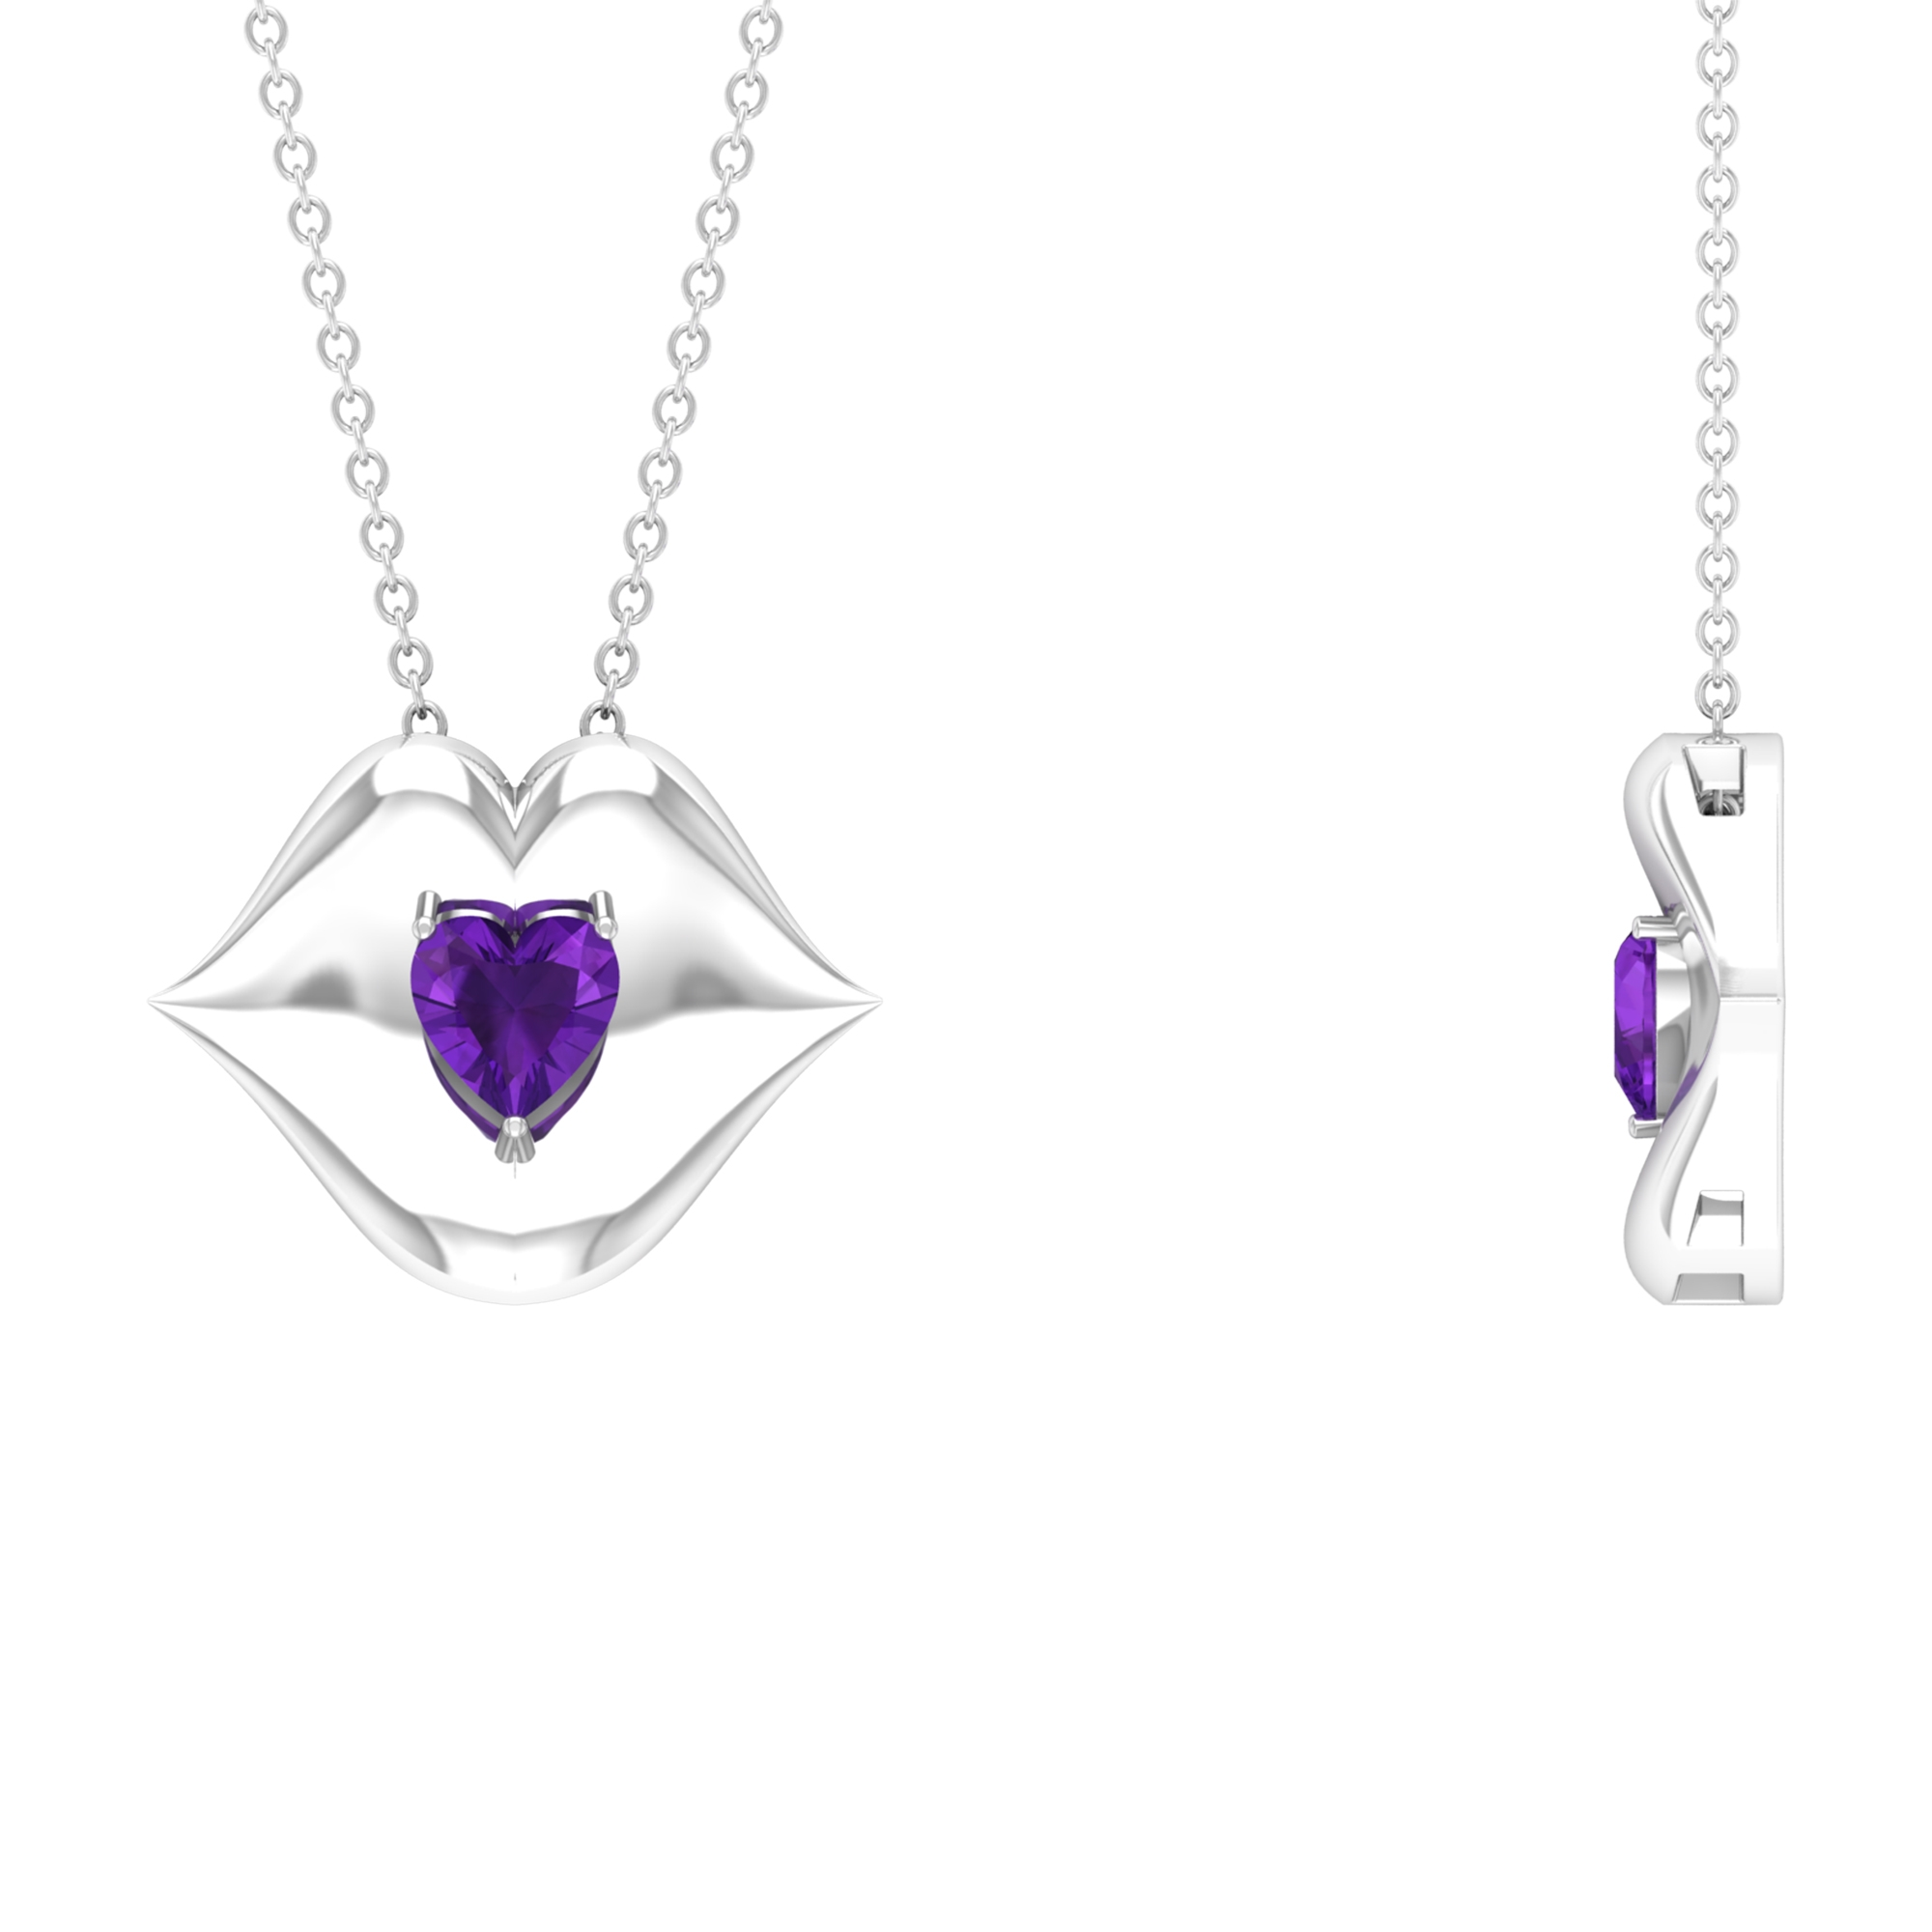 1/2 CT Heart Shape Amethyst with Gold Lips Pendant Necklace